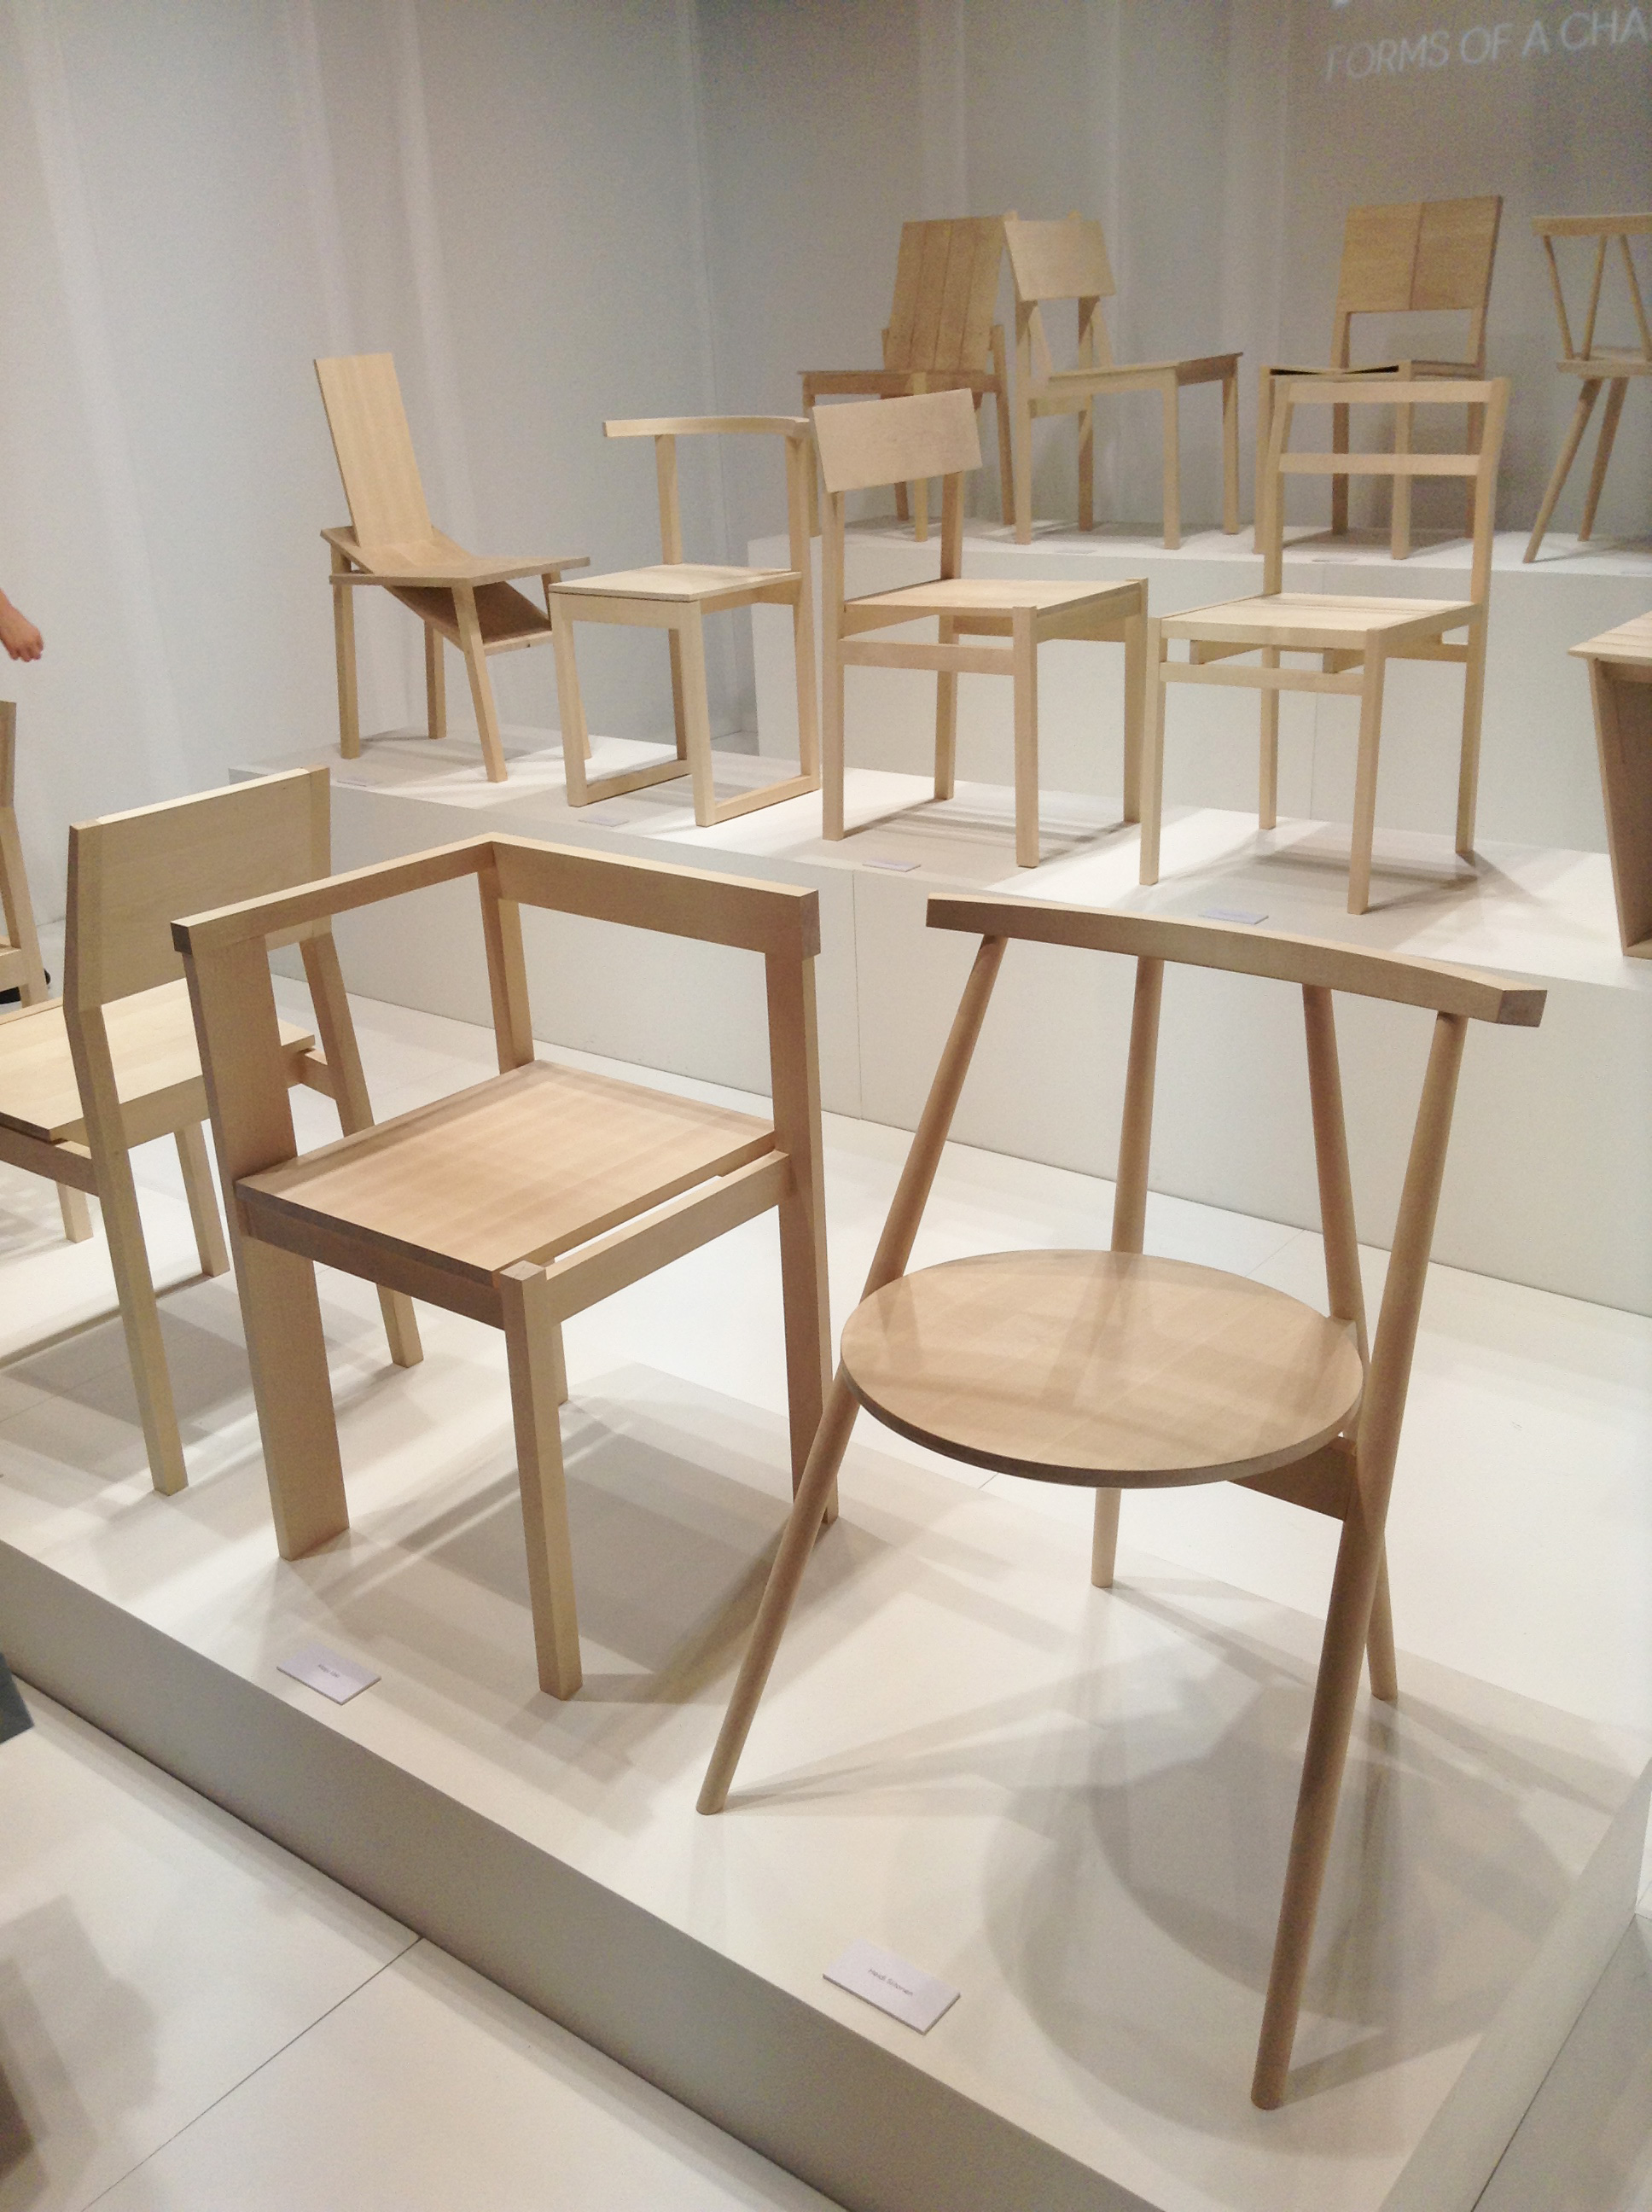 Studio Chairs Stockholm Furniture Fair Chairs Scandinavian Design